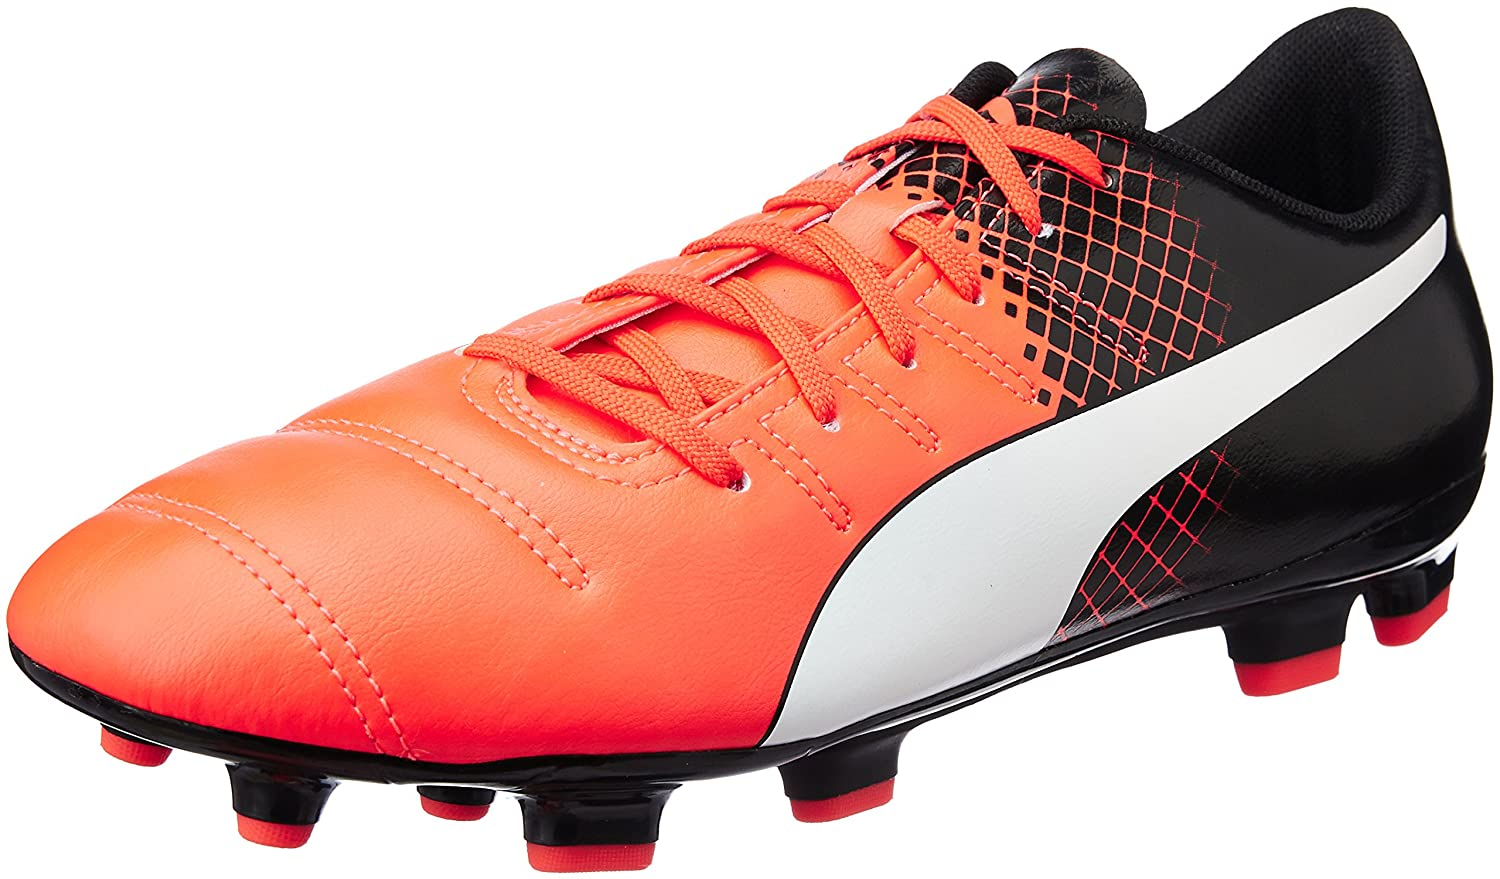 evopower football boots